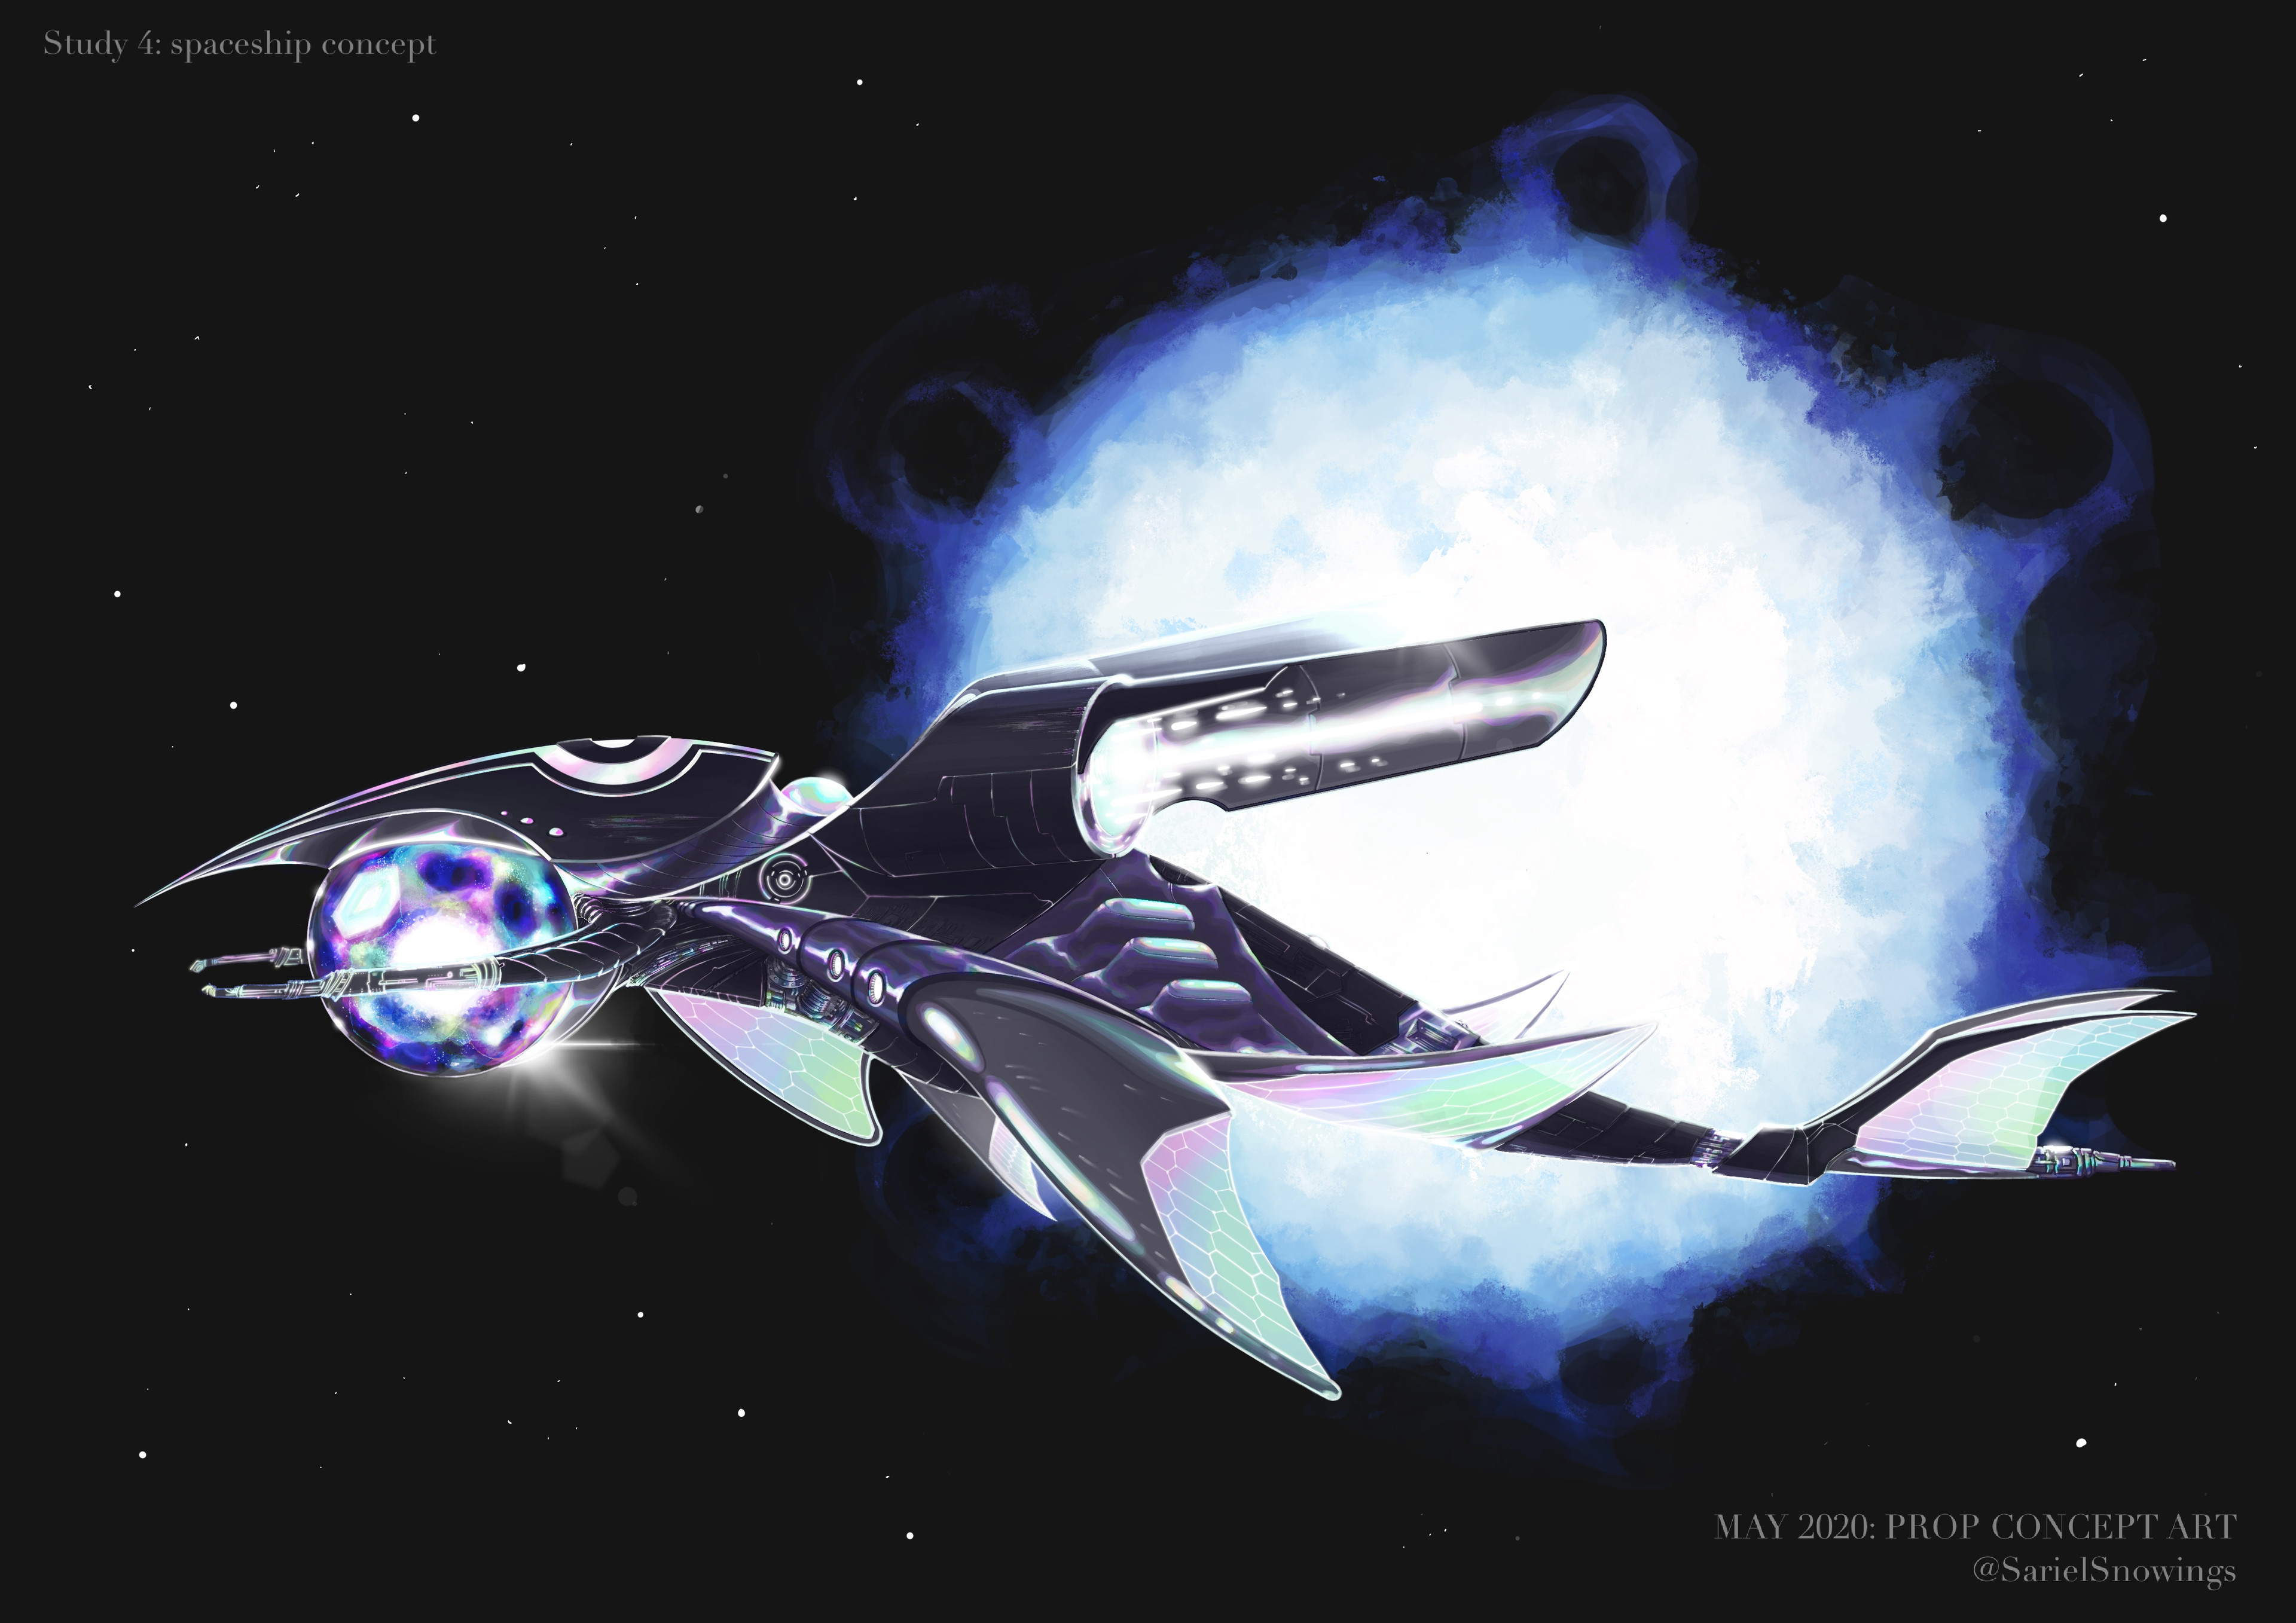 Final rendered illustration concept of the spaceship.